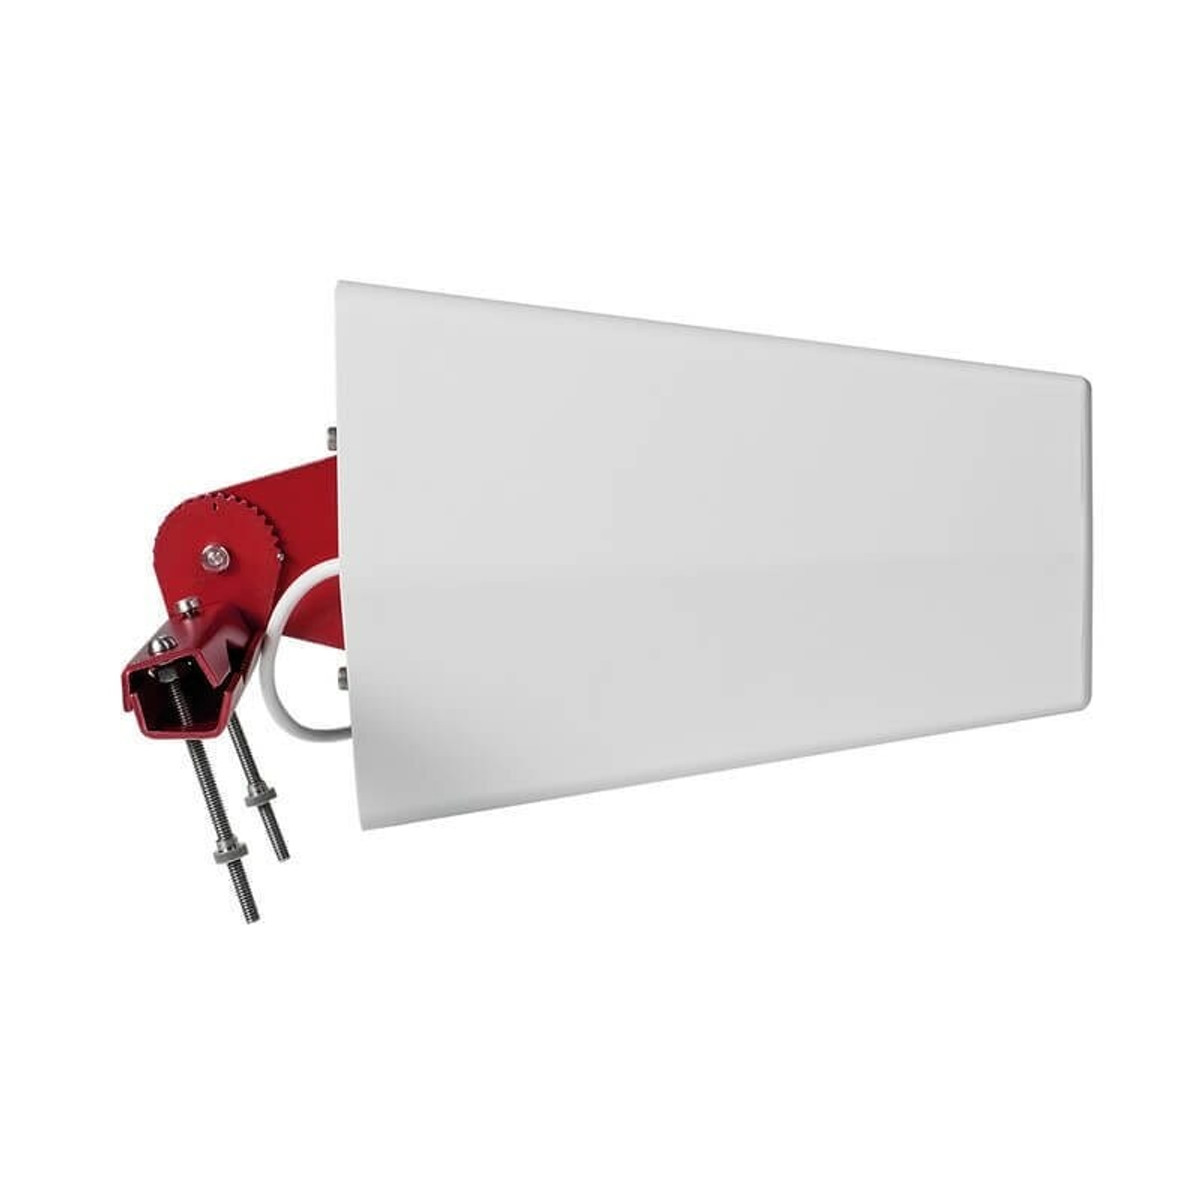 Wilson weBoost 314445 Home Outside Directional Antenna